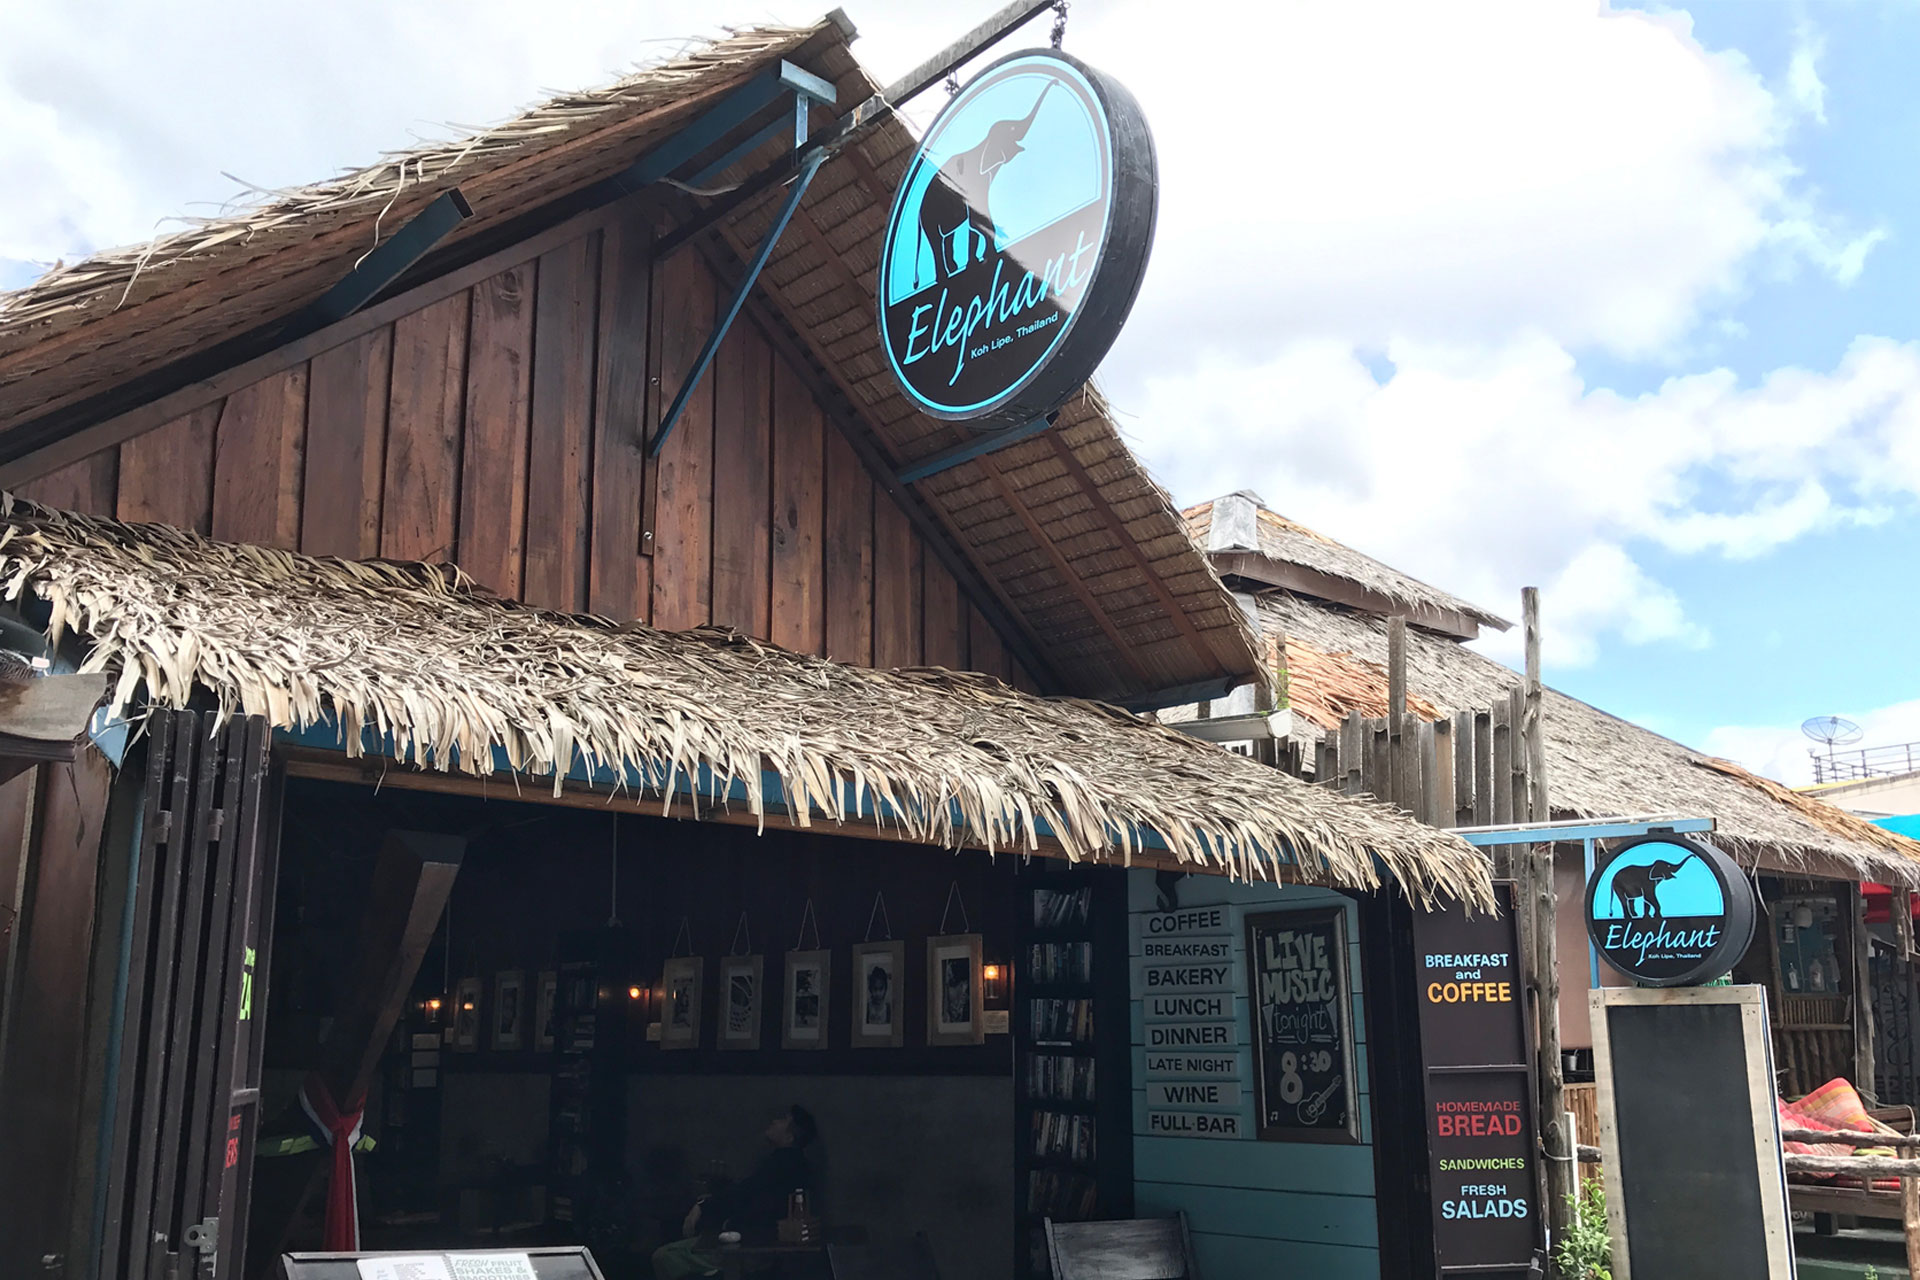 Elephant Cafe Koh Lipe at Koh Lipe Walking Street